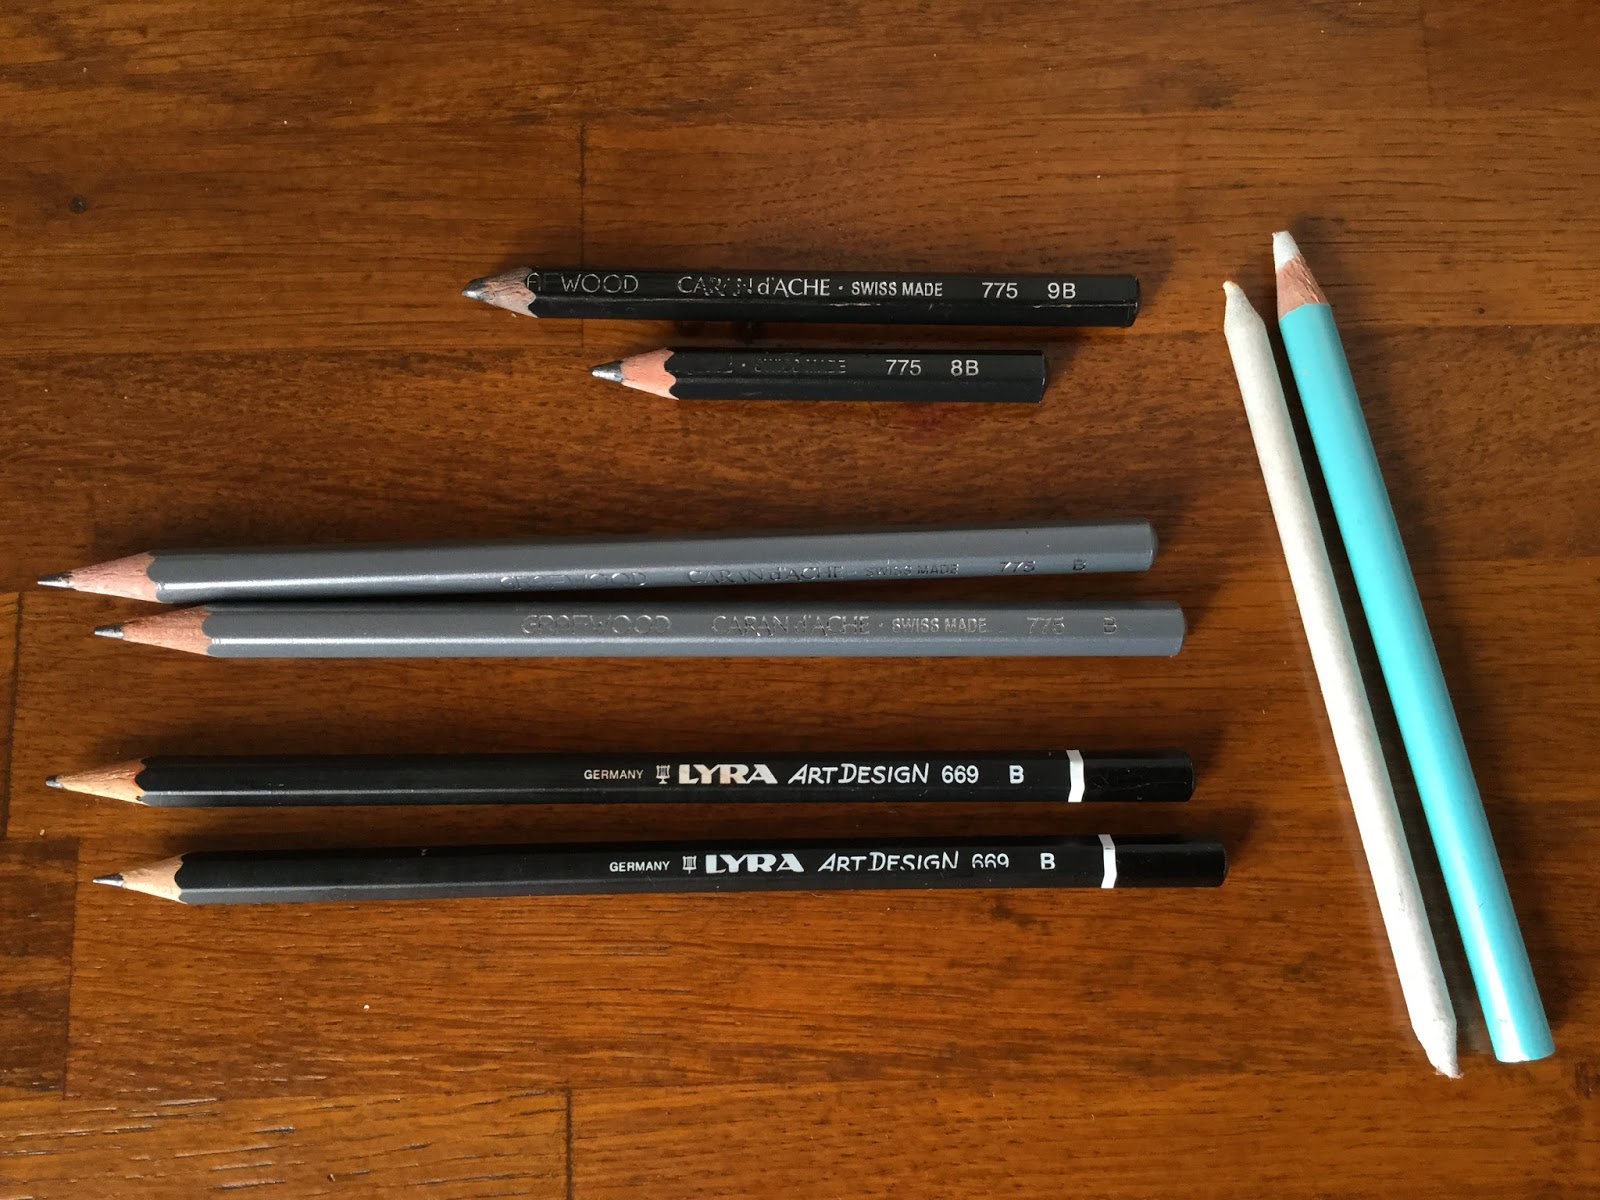 Graphite erasers and stumps